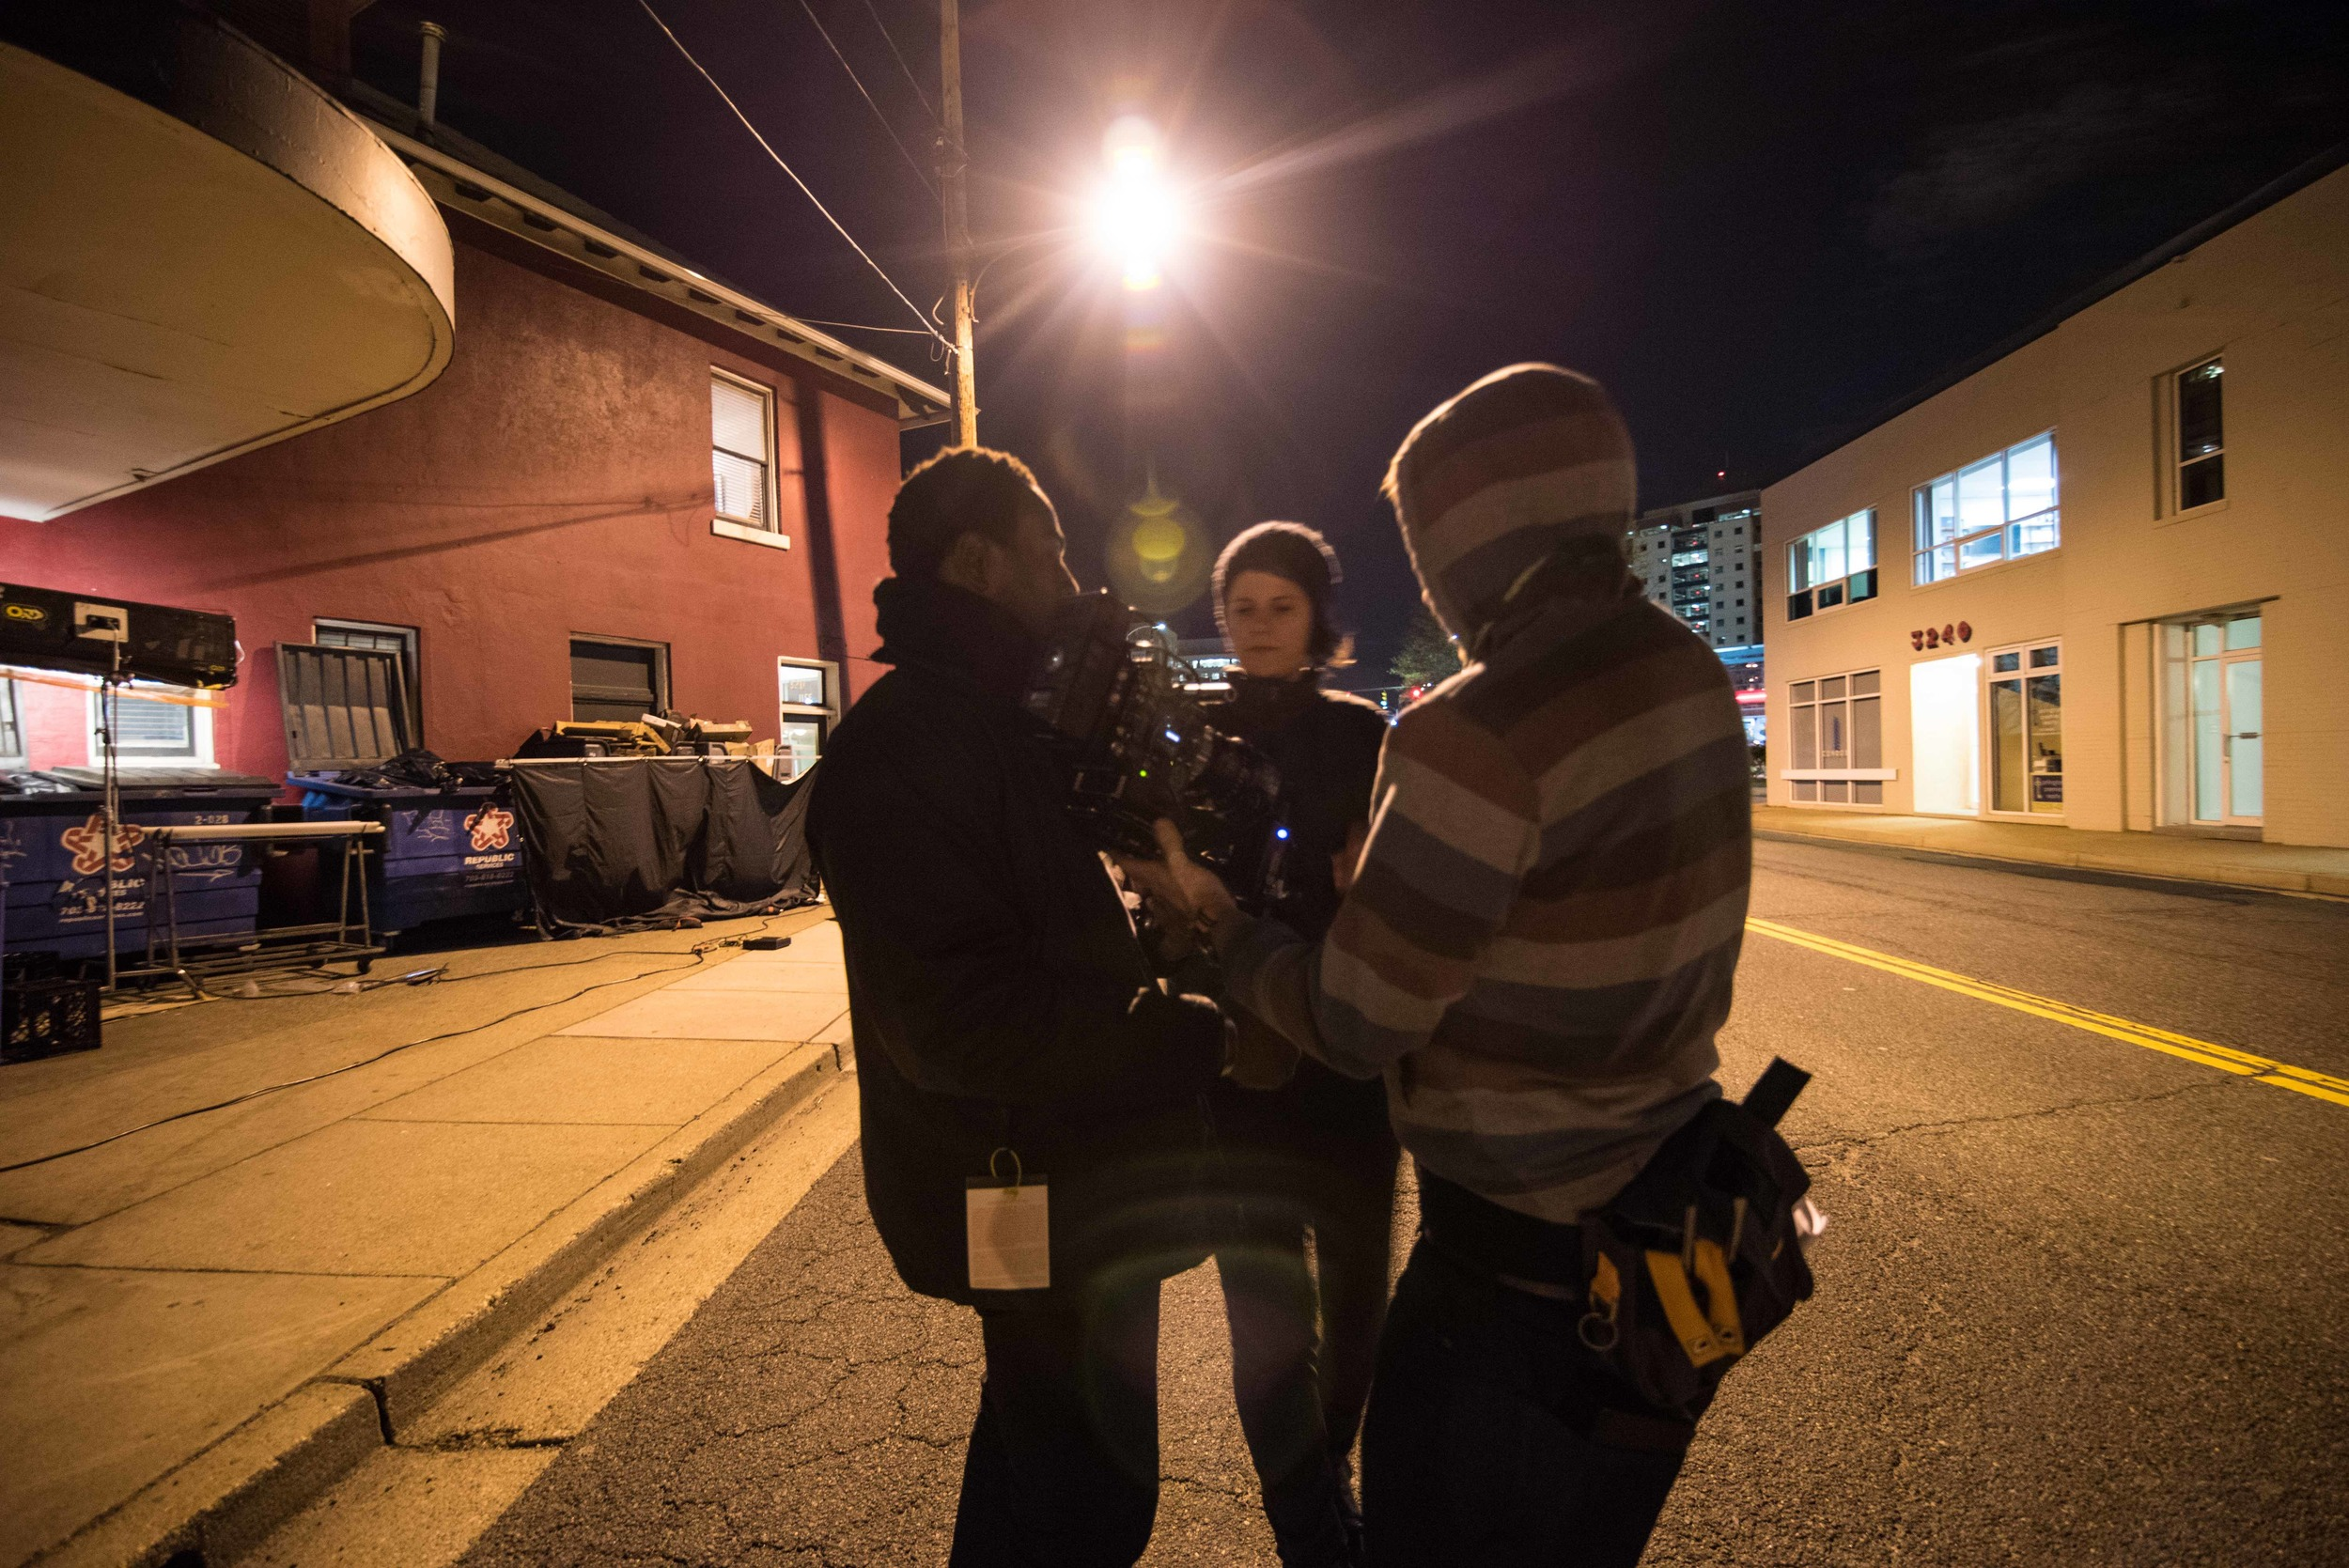 Cinematographer Hans Charles, Director Giovanna Chesler, AC Cameron Perrier get ready for the next take in JAVA the short. Image Dixie D. Vereen.